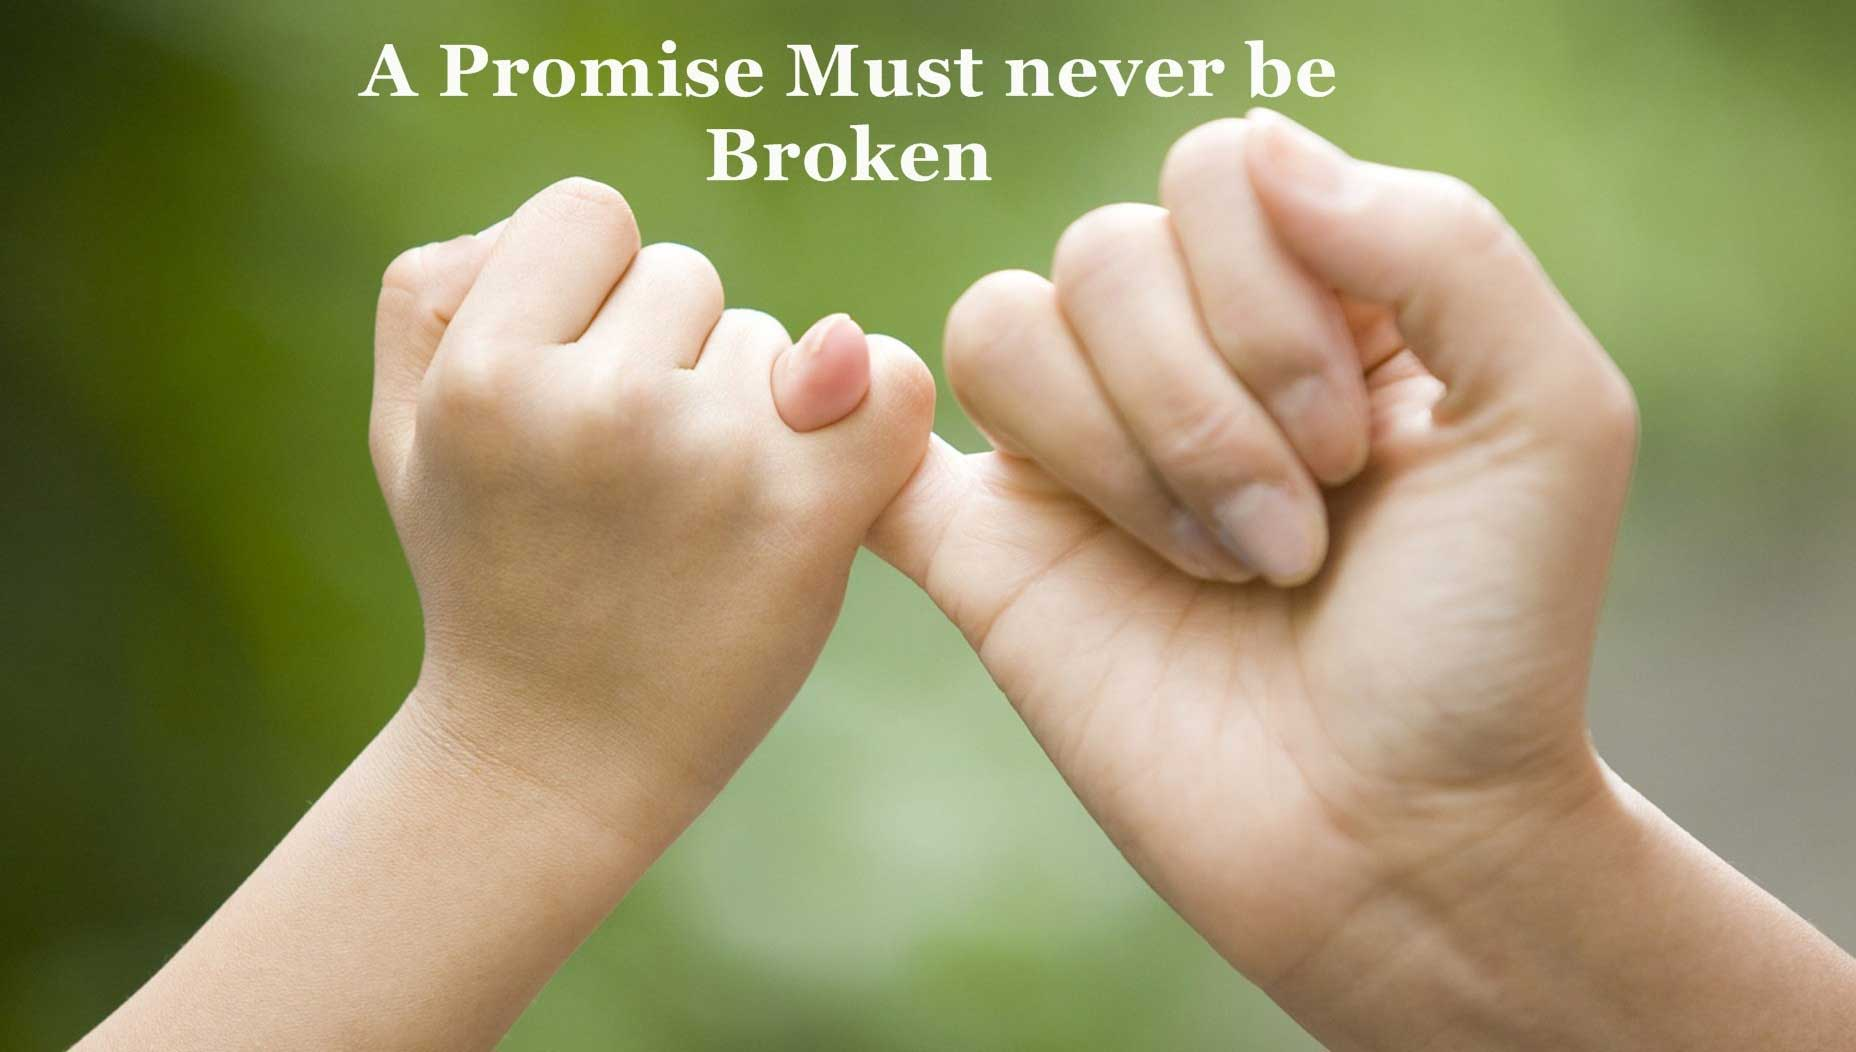 Promise-Day-2016-wallpaper-1